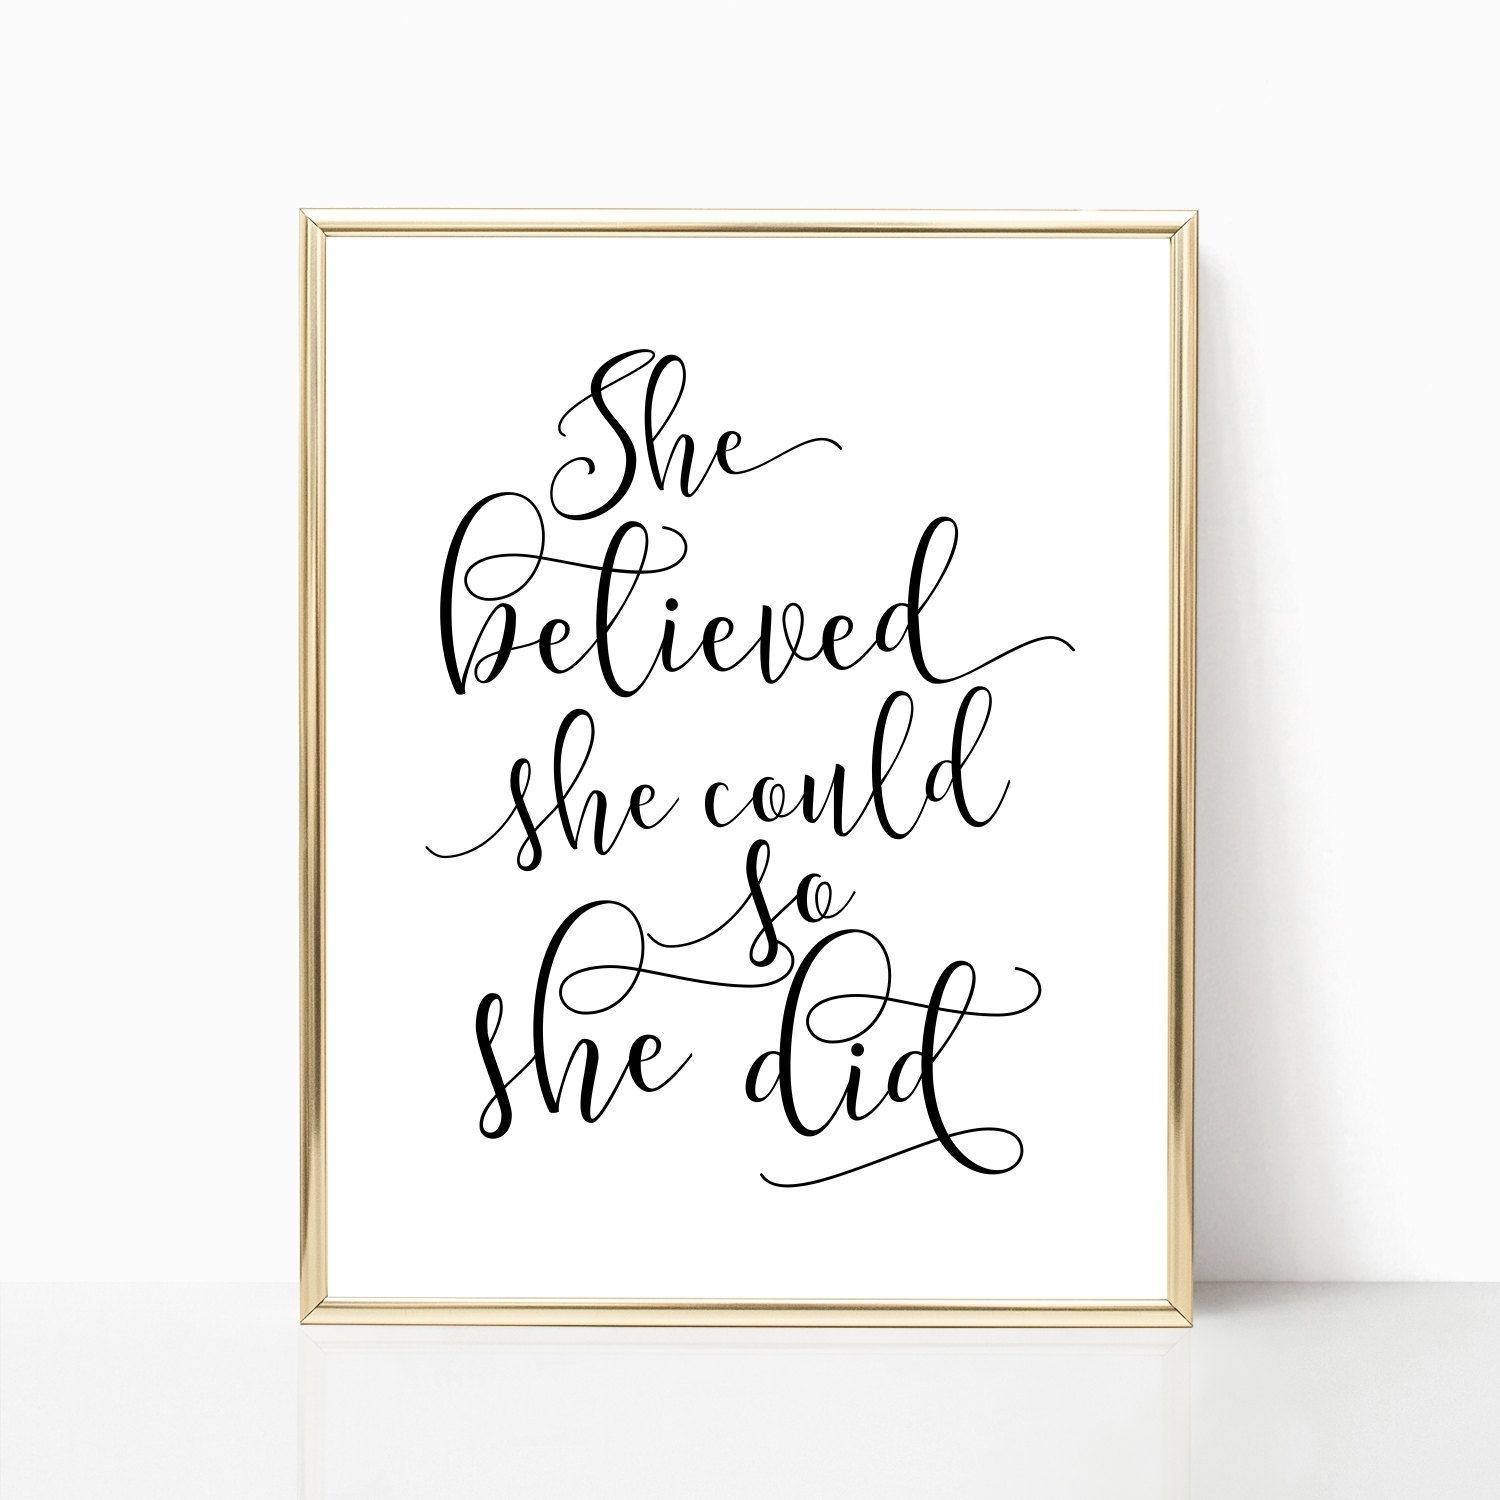 She Believed She Could So She Did Printable Art Girls Room Decor Regarding Newest She Believed She Could So She Did Wall Art (View 12 of 20)